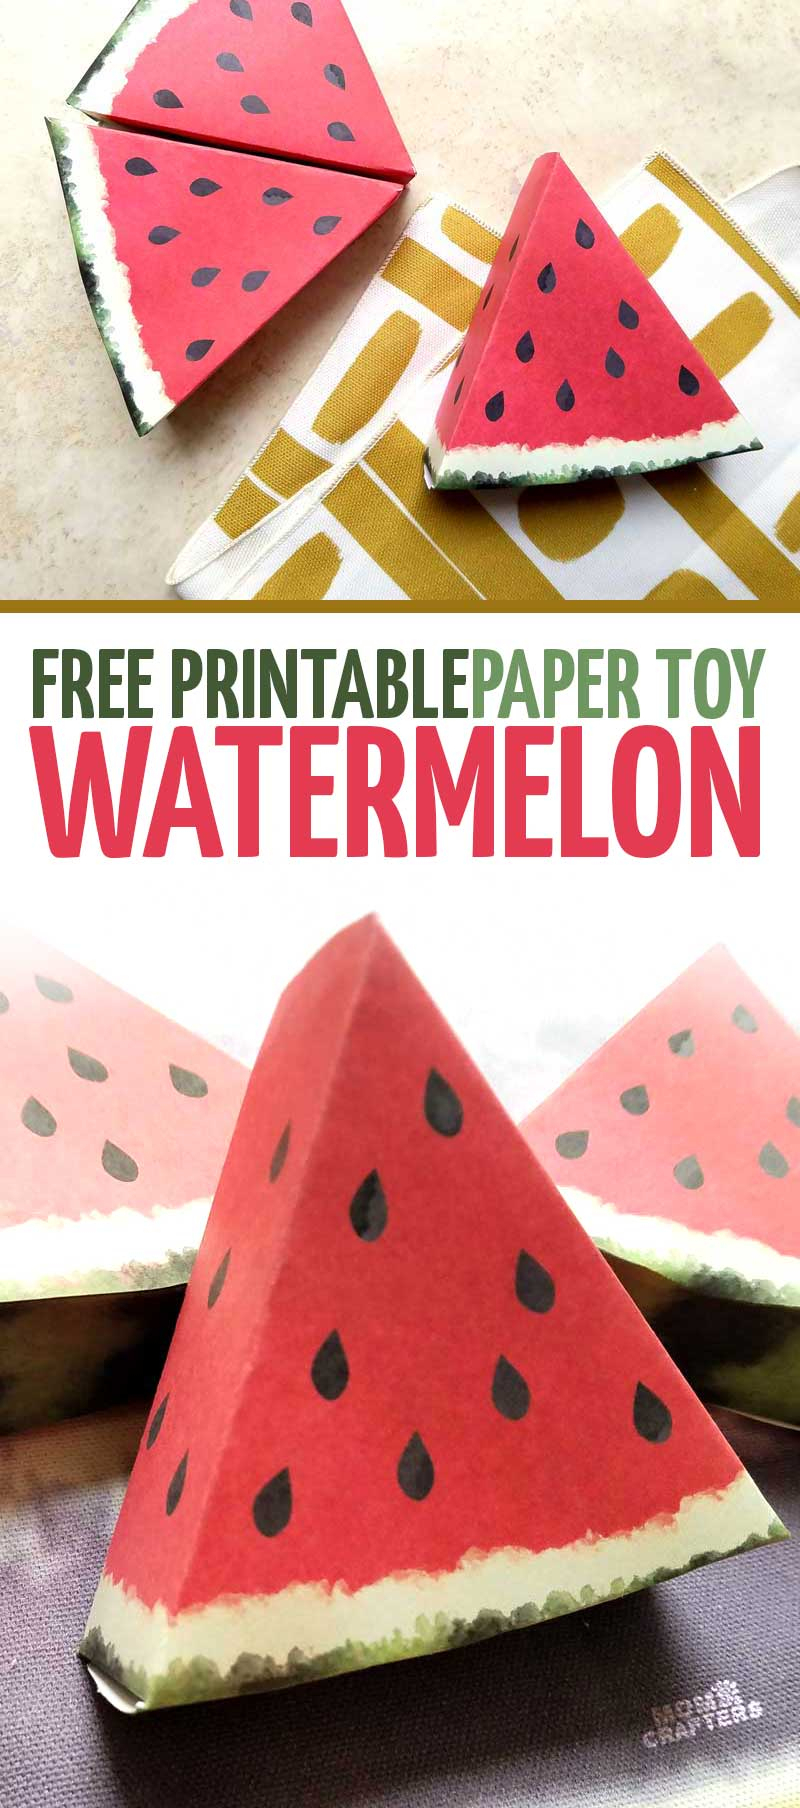 Paper Craft Templates For Play Fruit: Watermelon – Moms And Crafters - Free Printable Paper Crafts